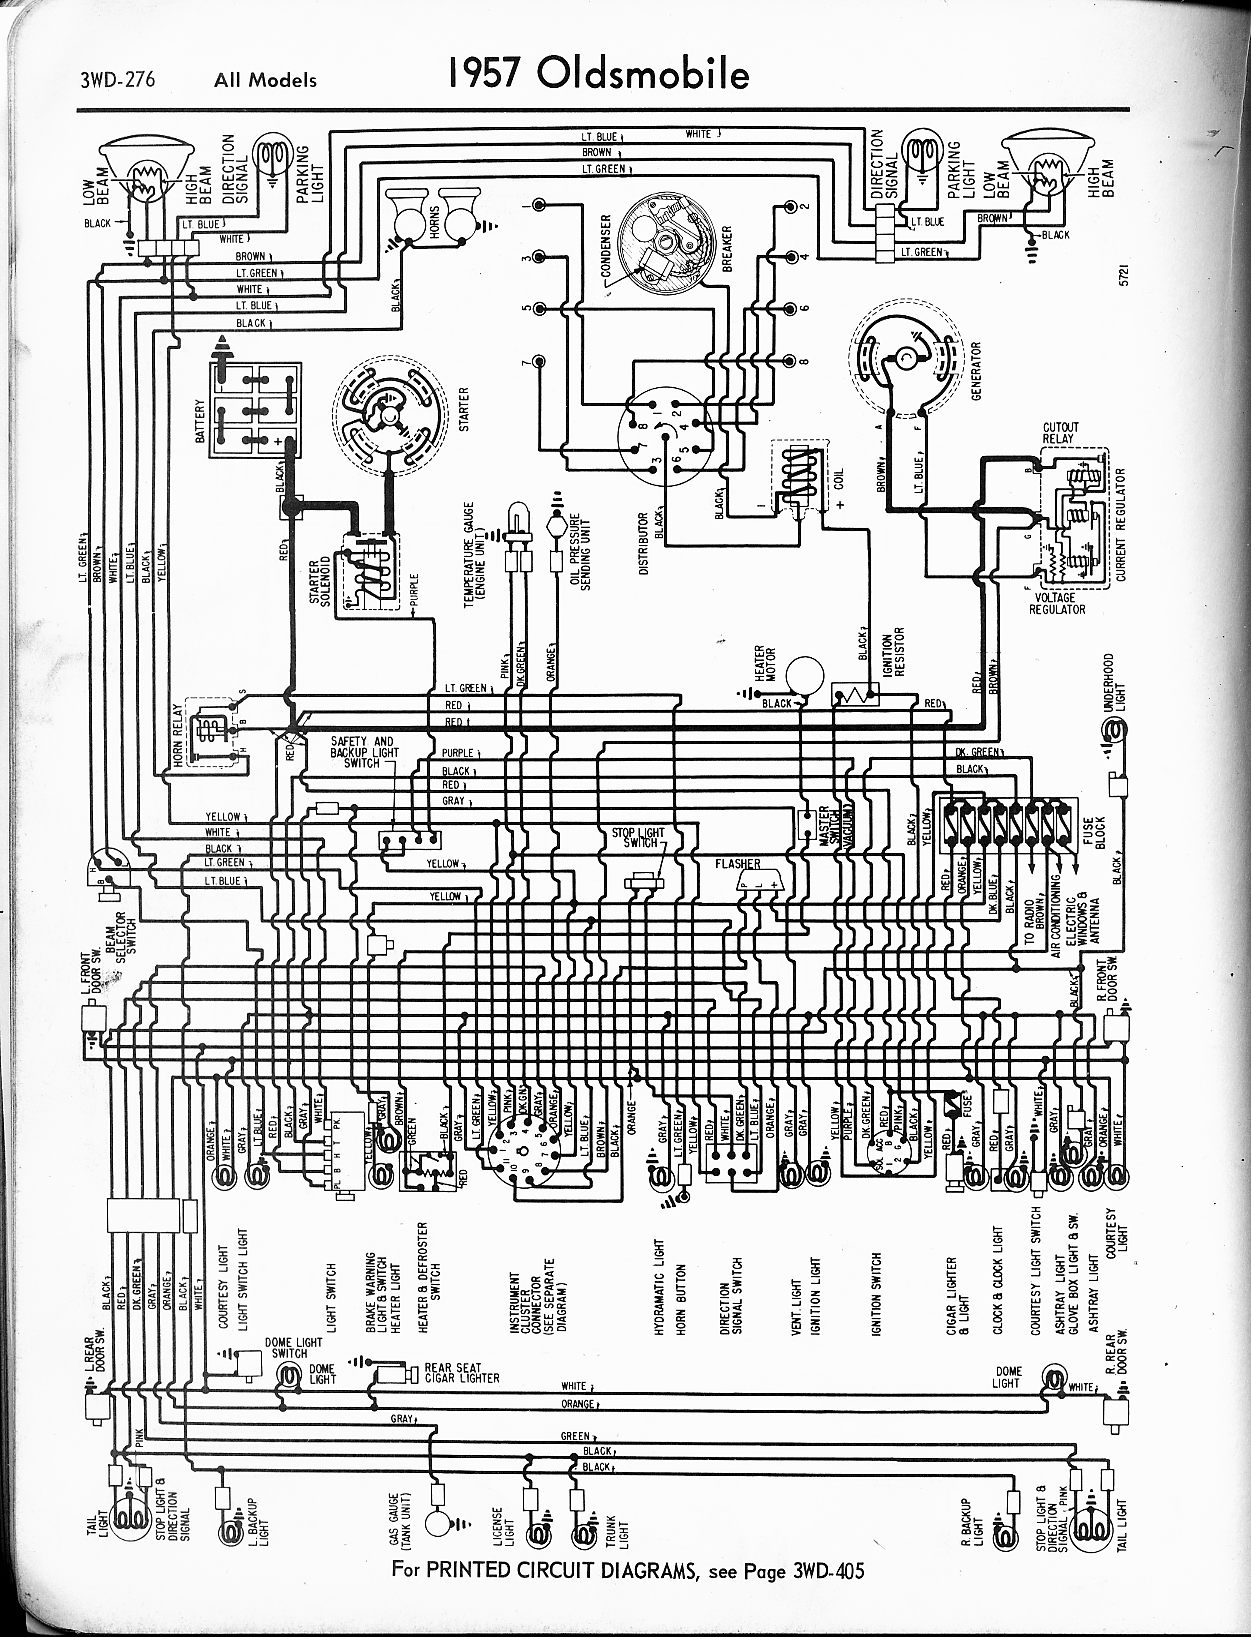 oldsmobile wiring diagrams - the old car manual project 1950 oldsmobile 98 wiring diagrams 82 oldsmobile 98 wiring diagram